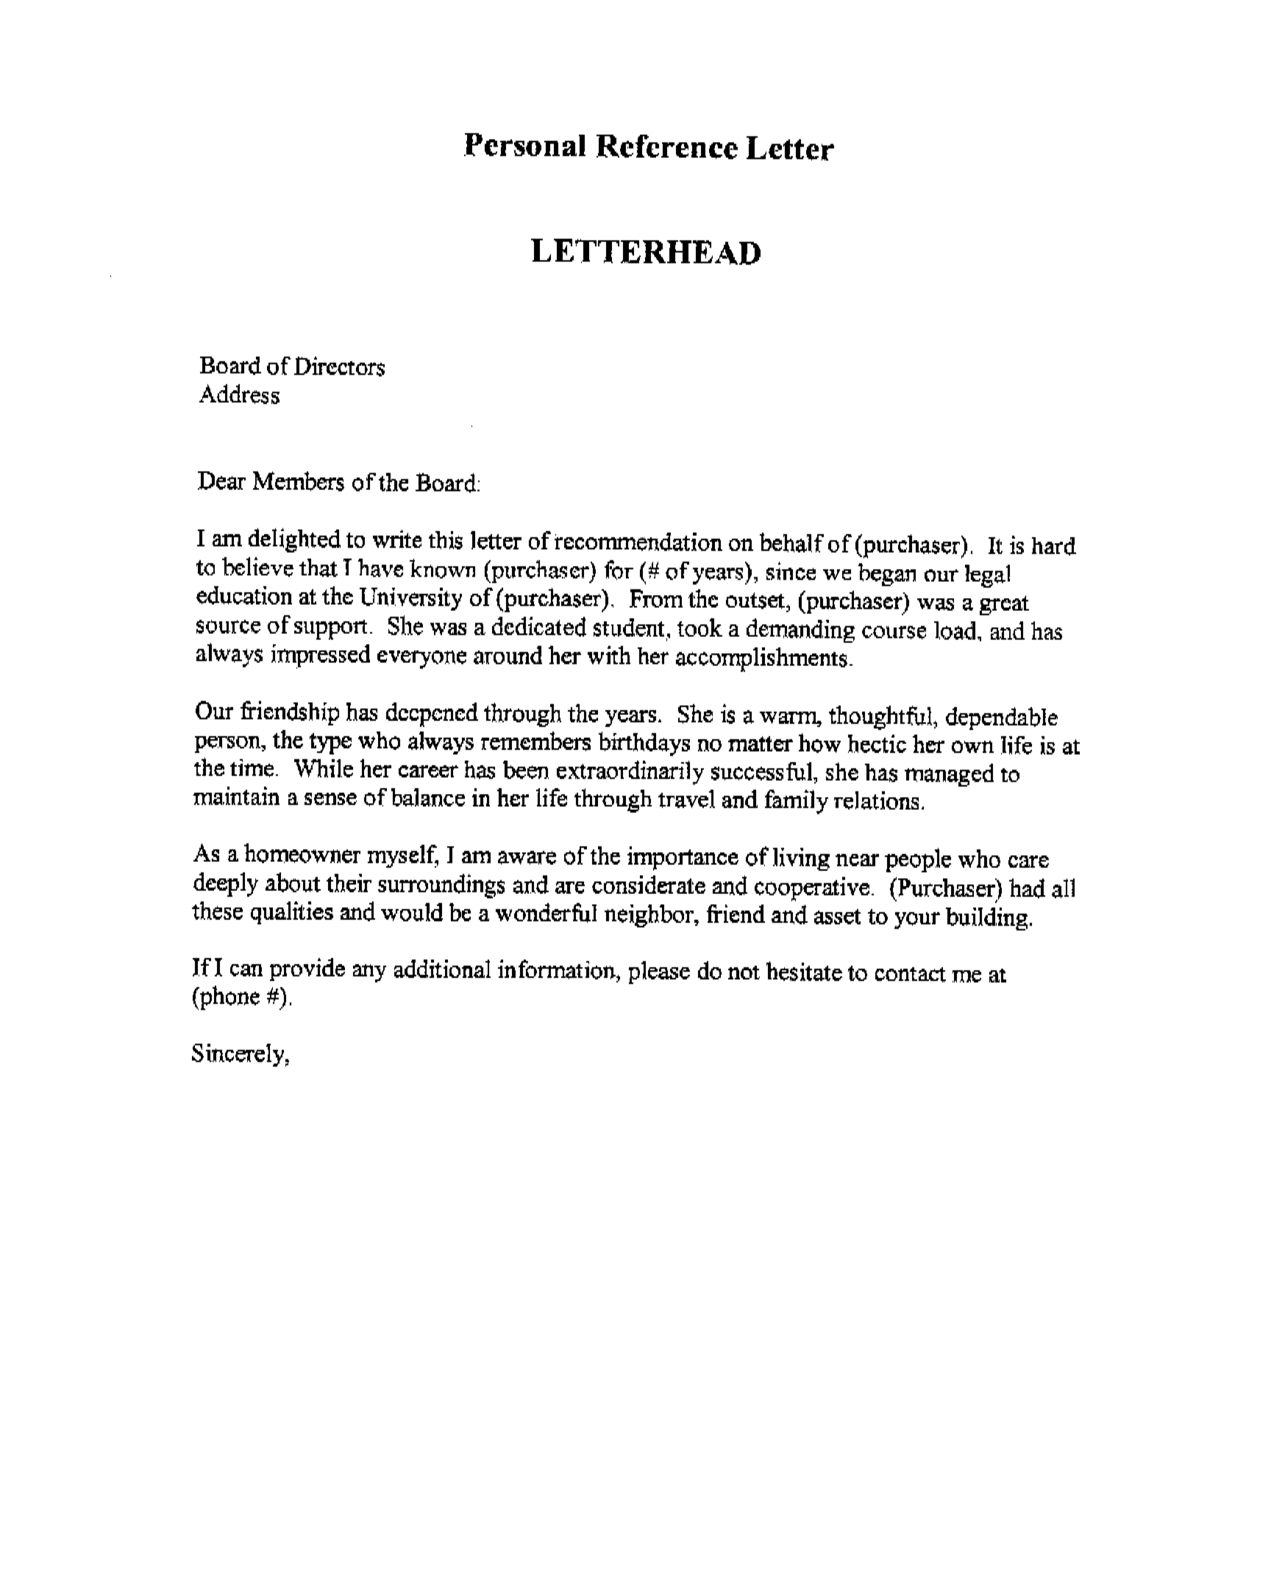 Sample Of Letters Letter Of Recommendation Examples And Writing Tips